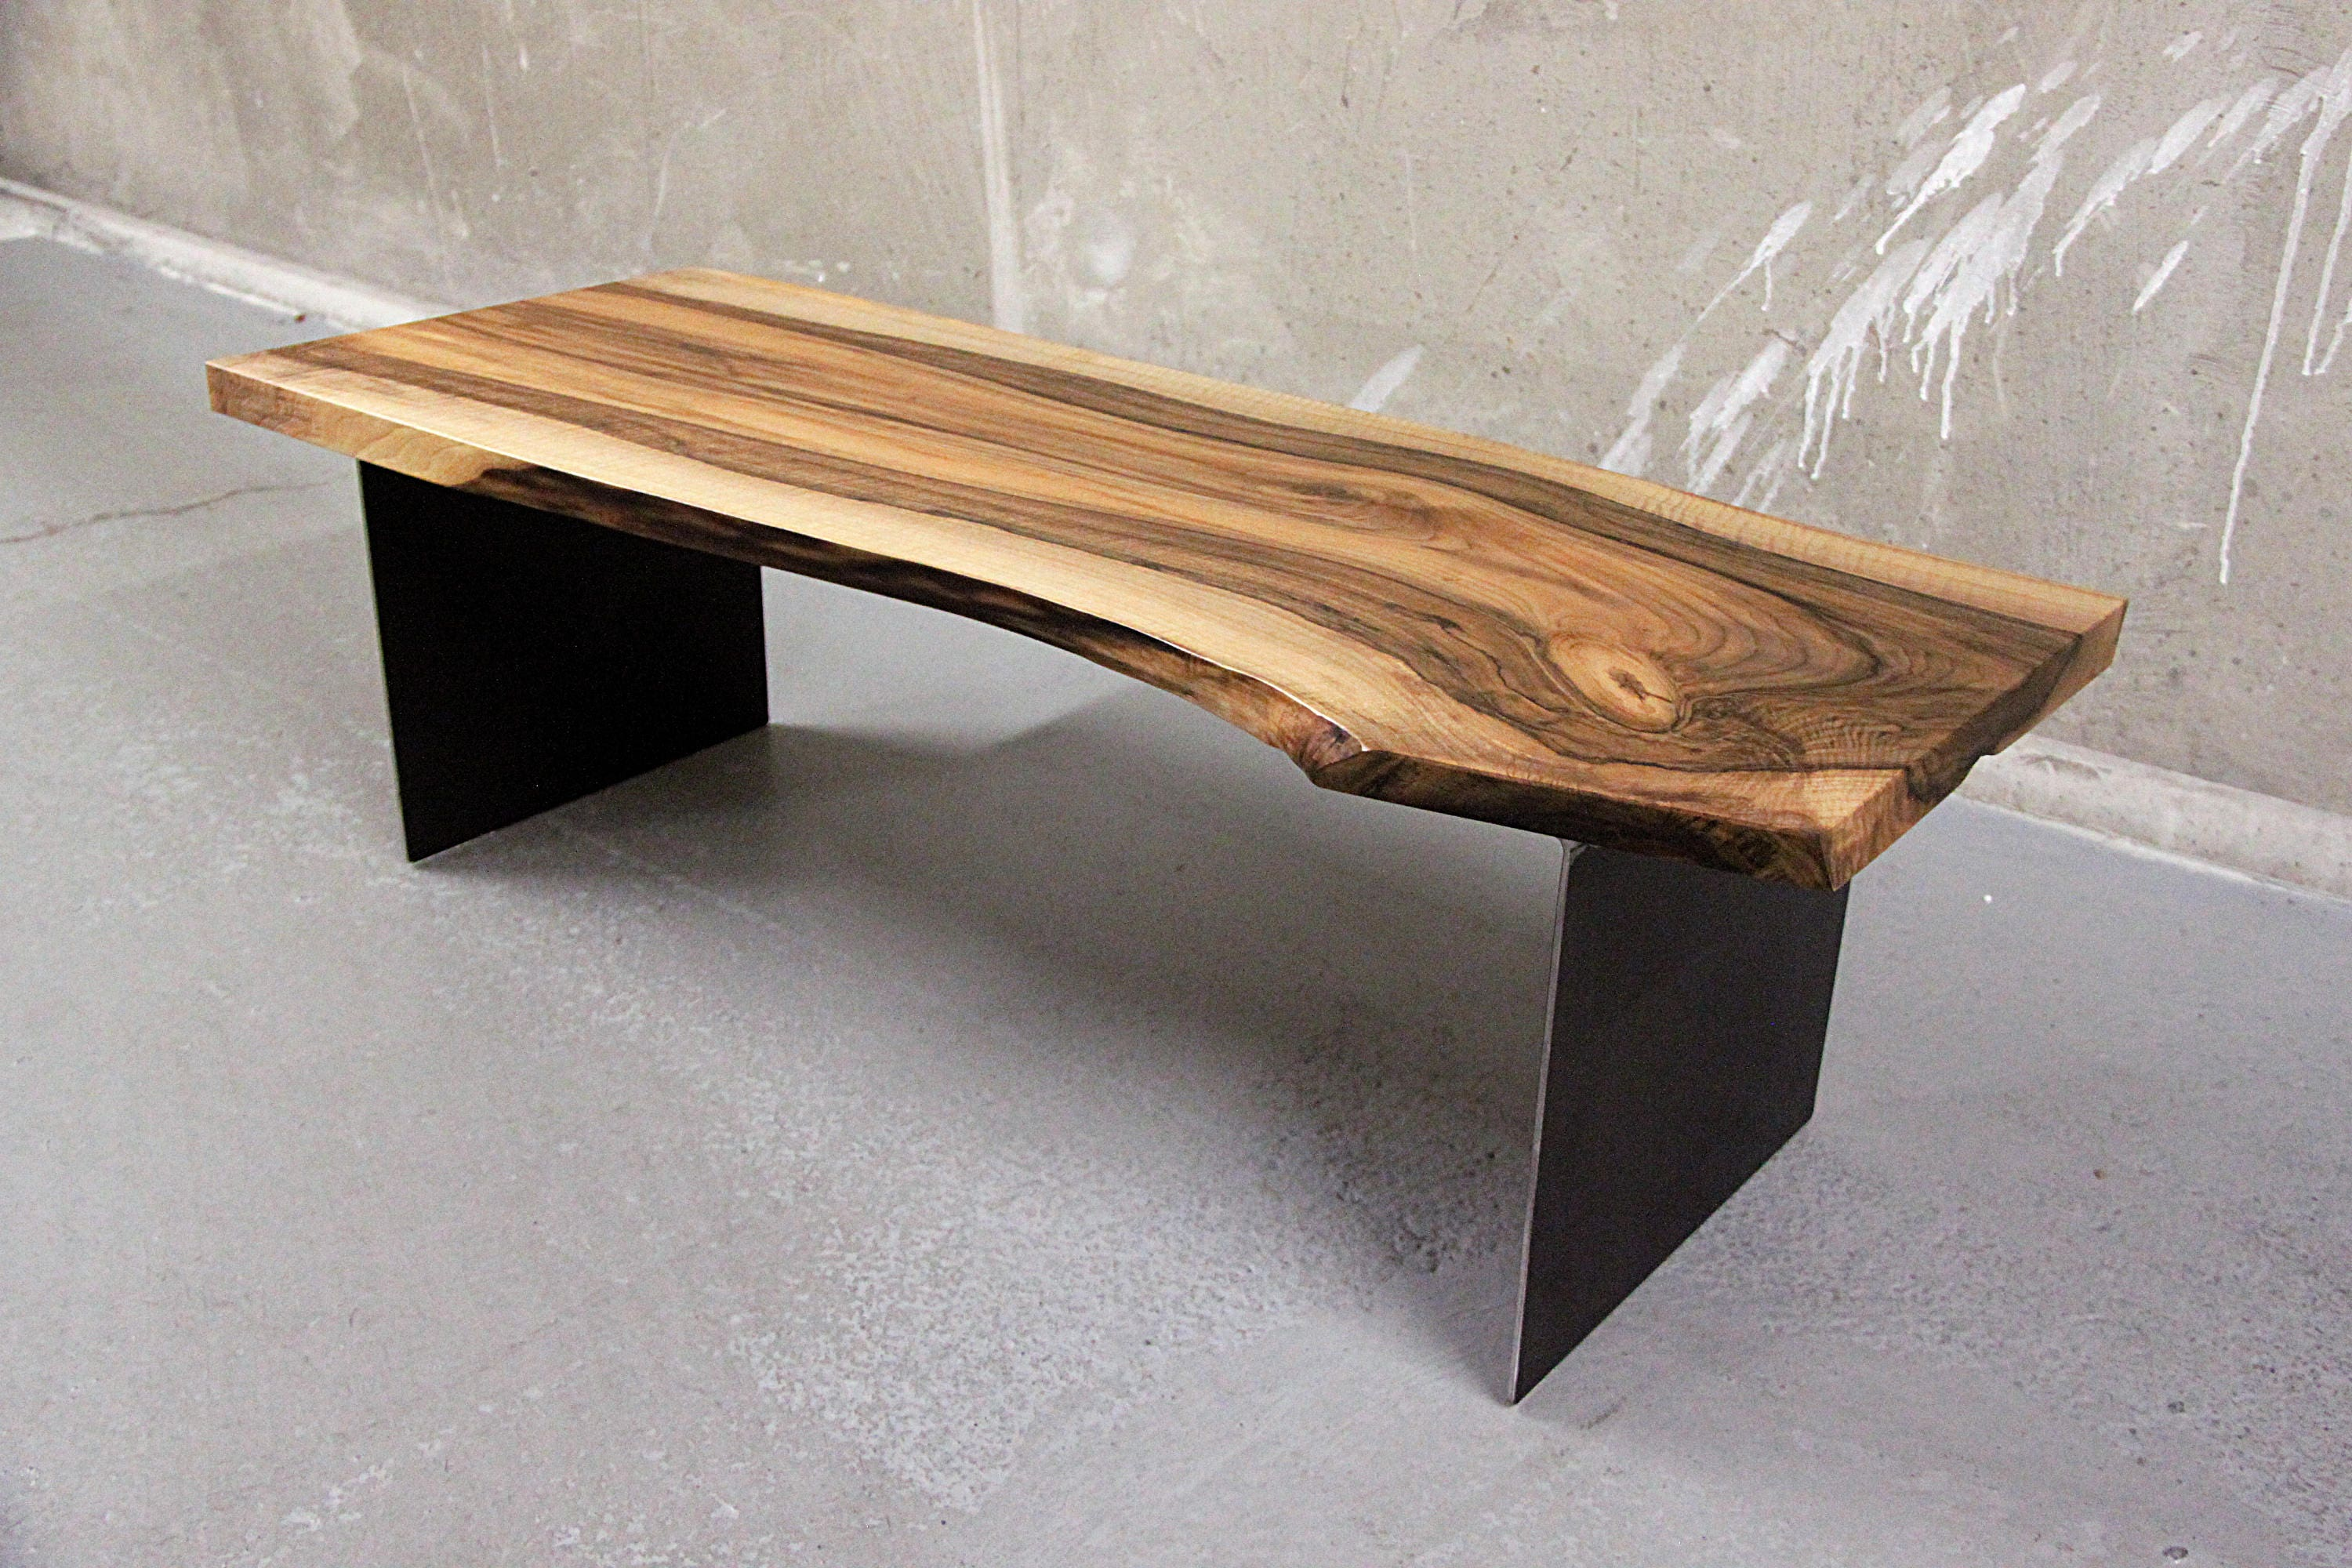 Live edge Solid walnut coffee table on steel plates legs